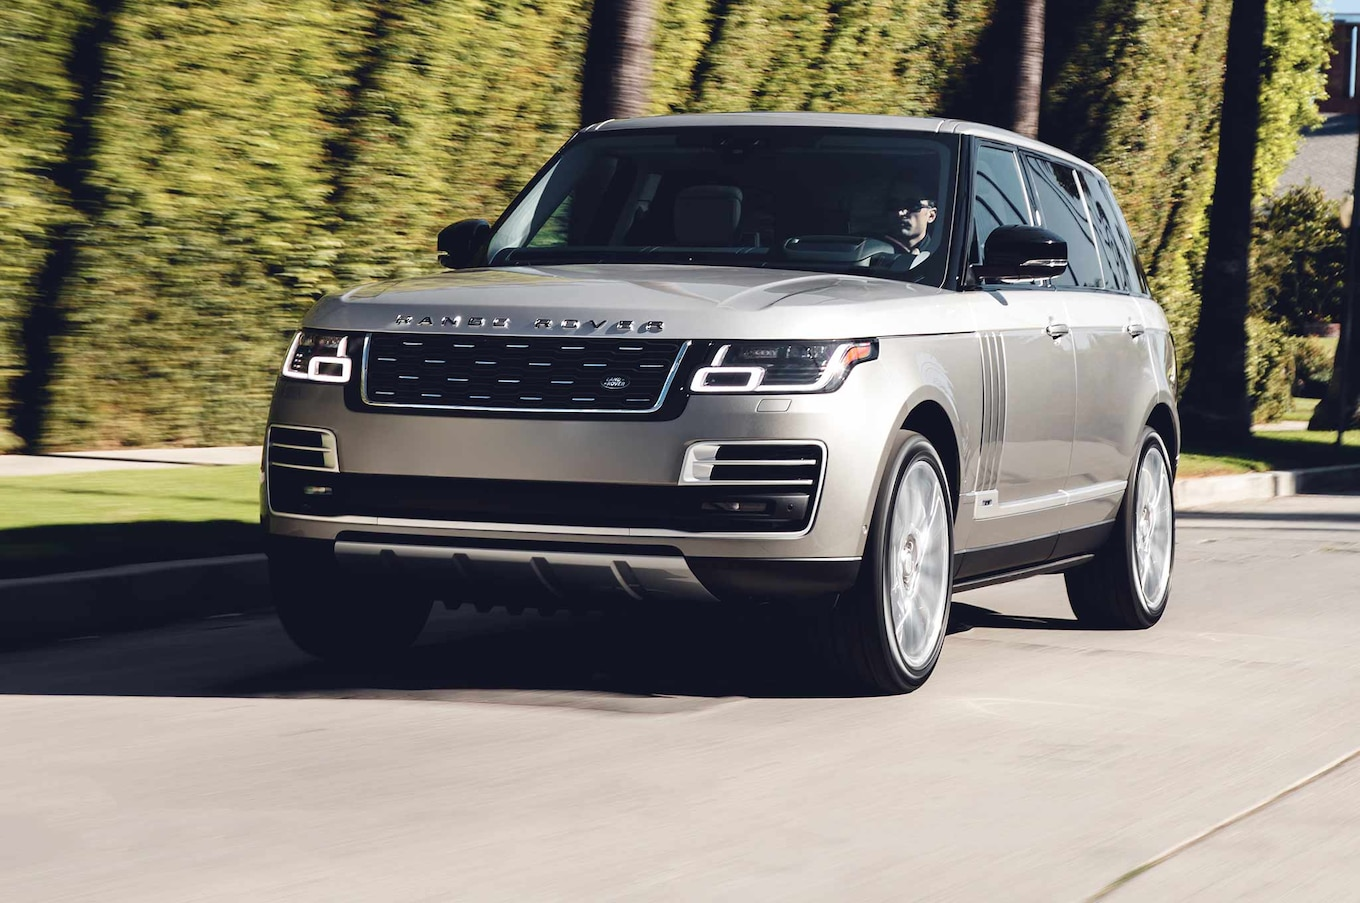 Land Rover Shows f Updated 2018 Range Rover SVAutobiography in